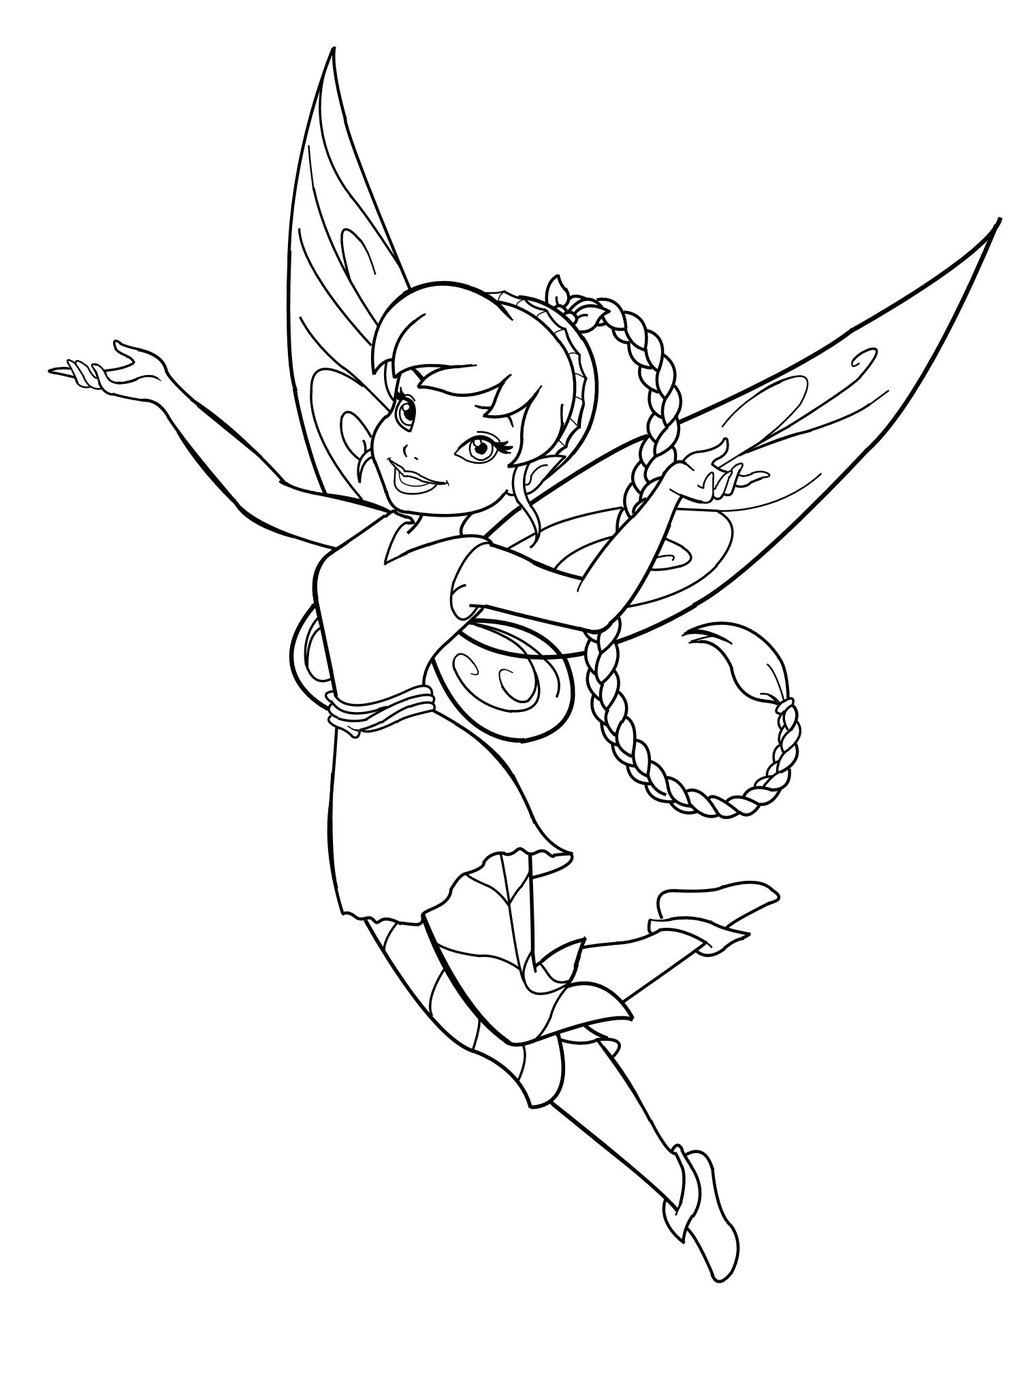 coloring disney fairies printable disney fairies coloring pages for kids cool2bkids fairies disney coloring 1 1